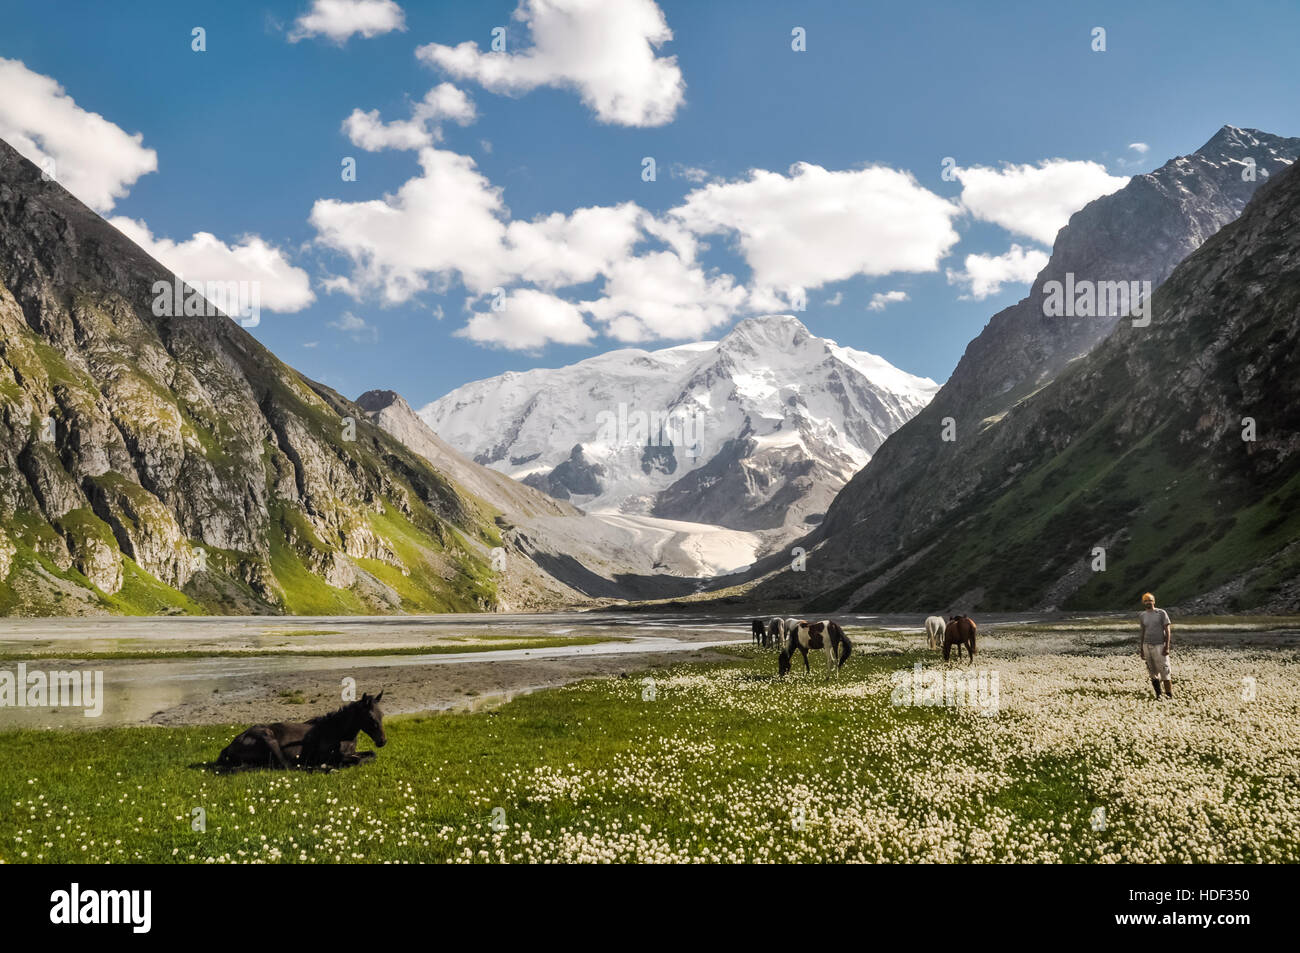 Photo of hiker standing in field near wild horses with large mountain range in distance in Karakol in Kyrgystan. - Stock Image